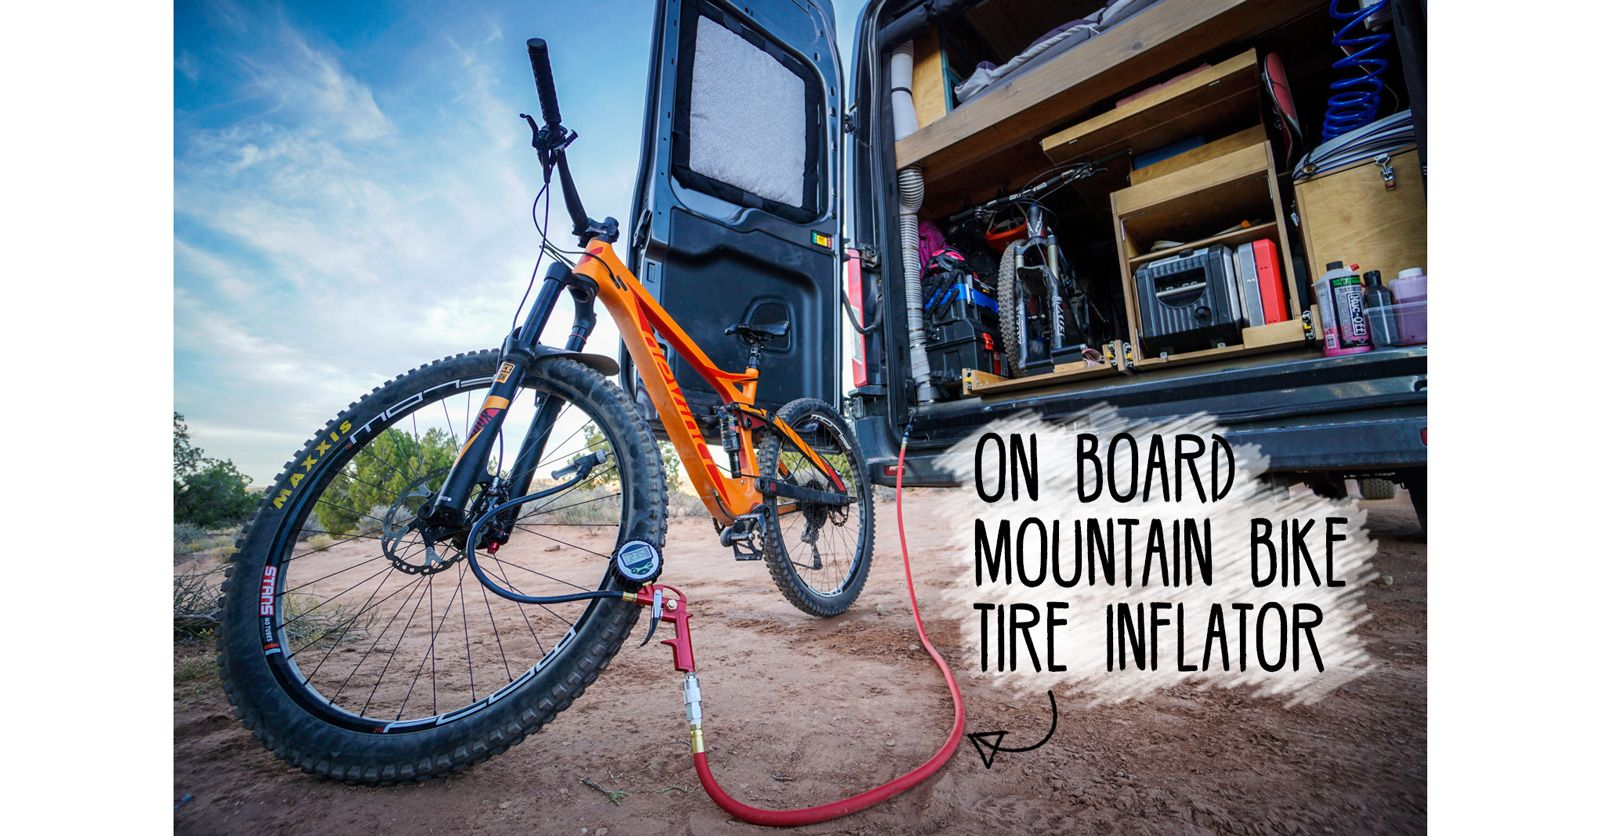 On Board Mountain Bike Tire Inflator Mountain Bike Tires Tire